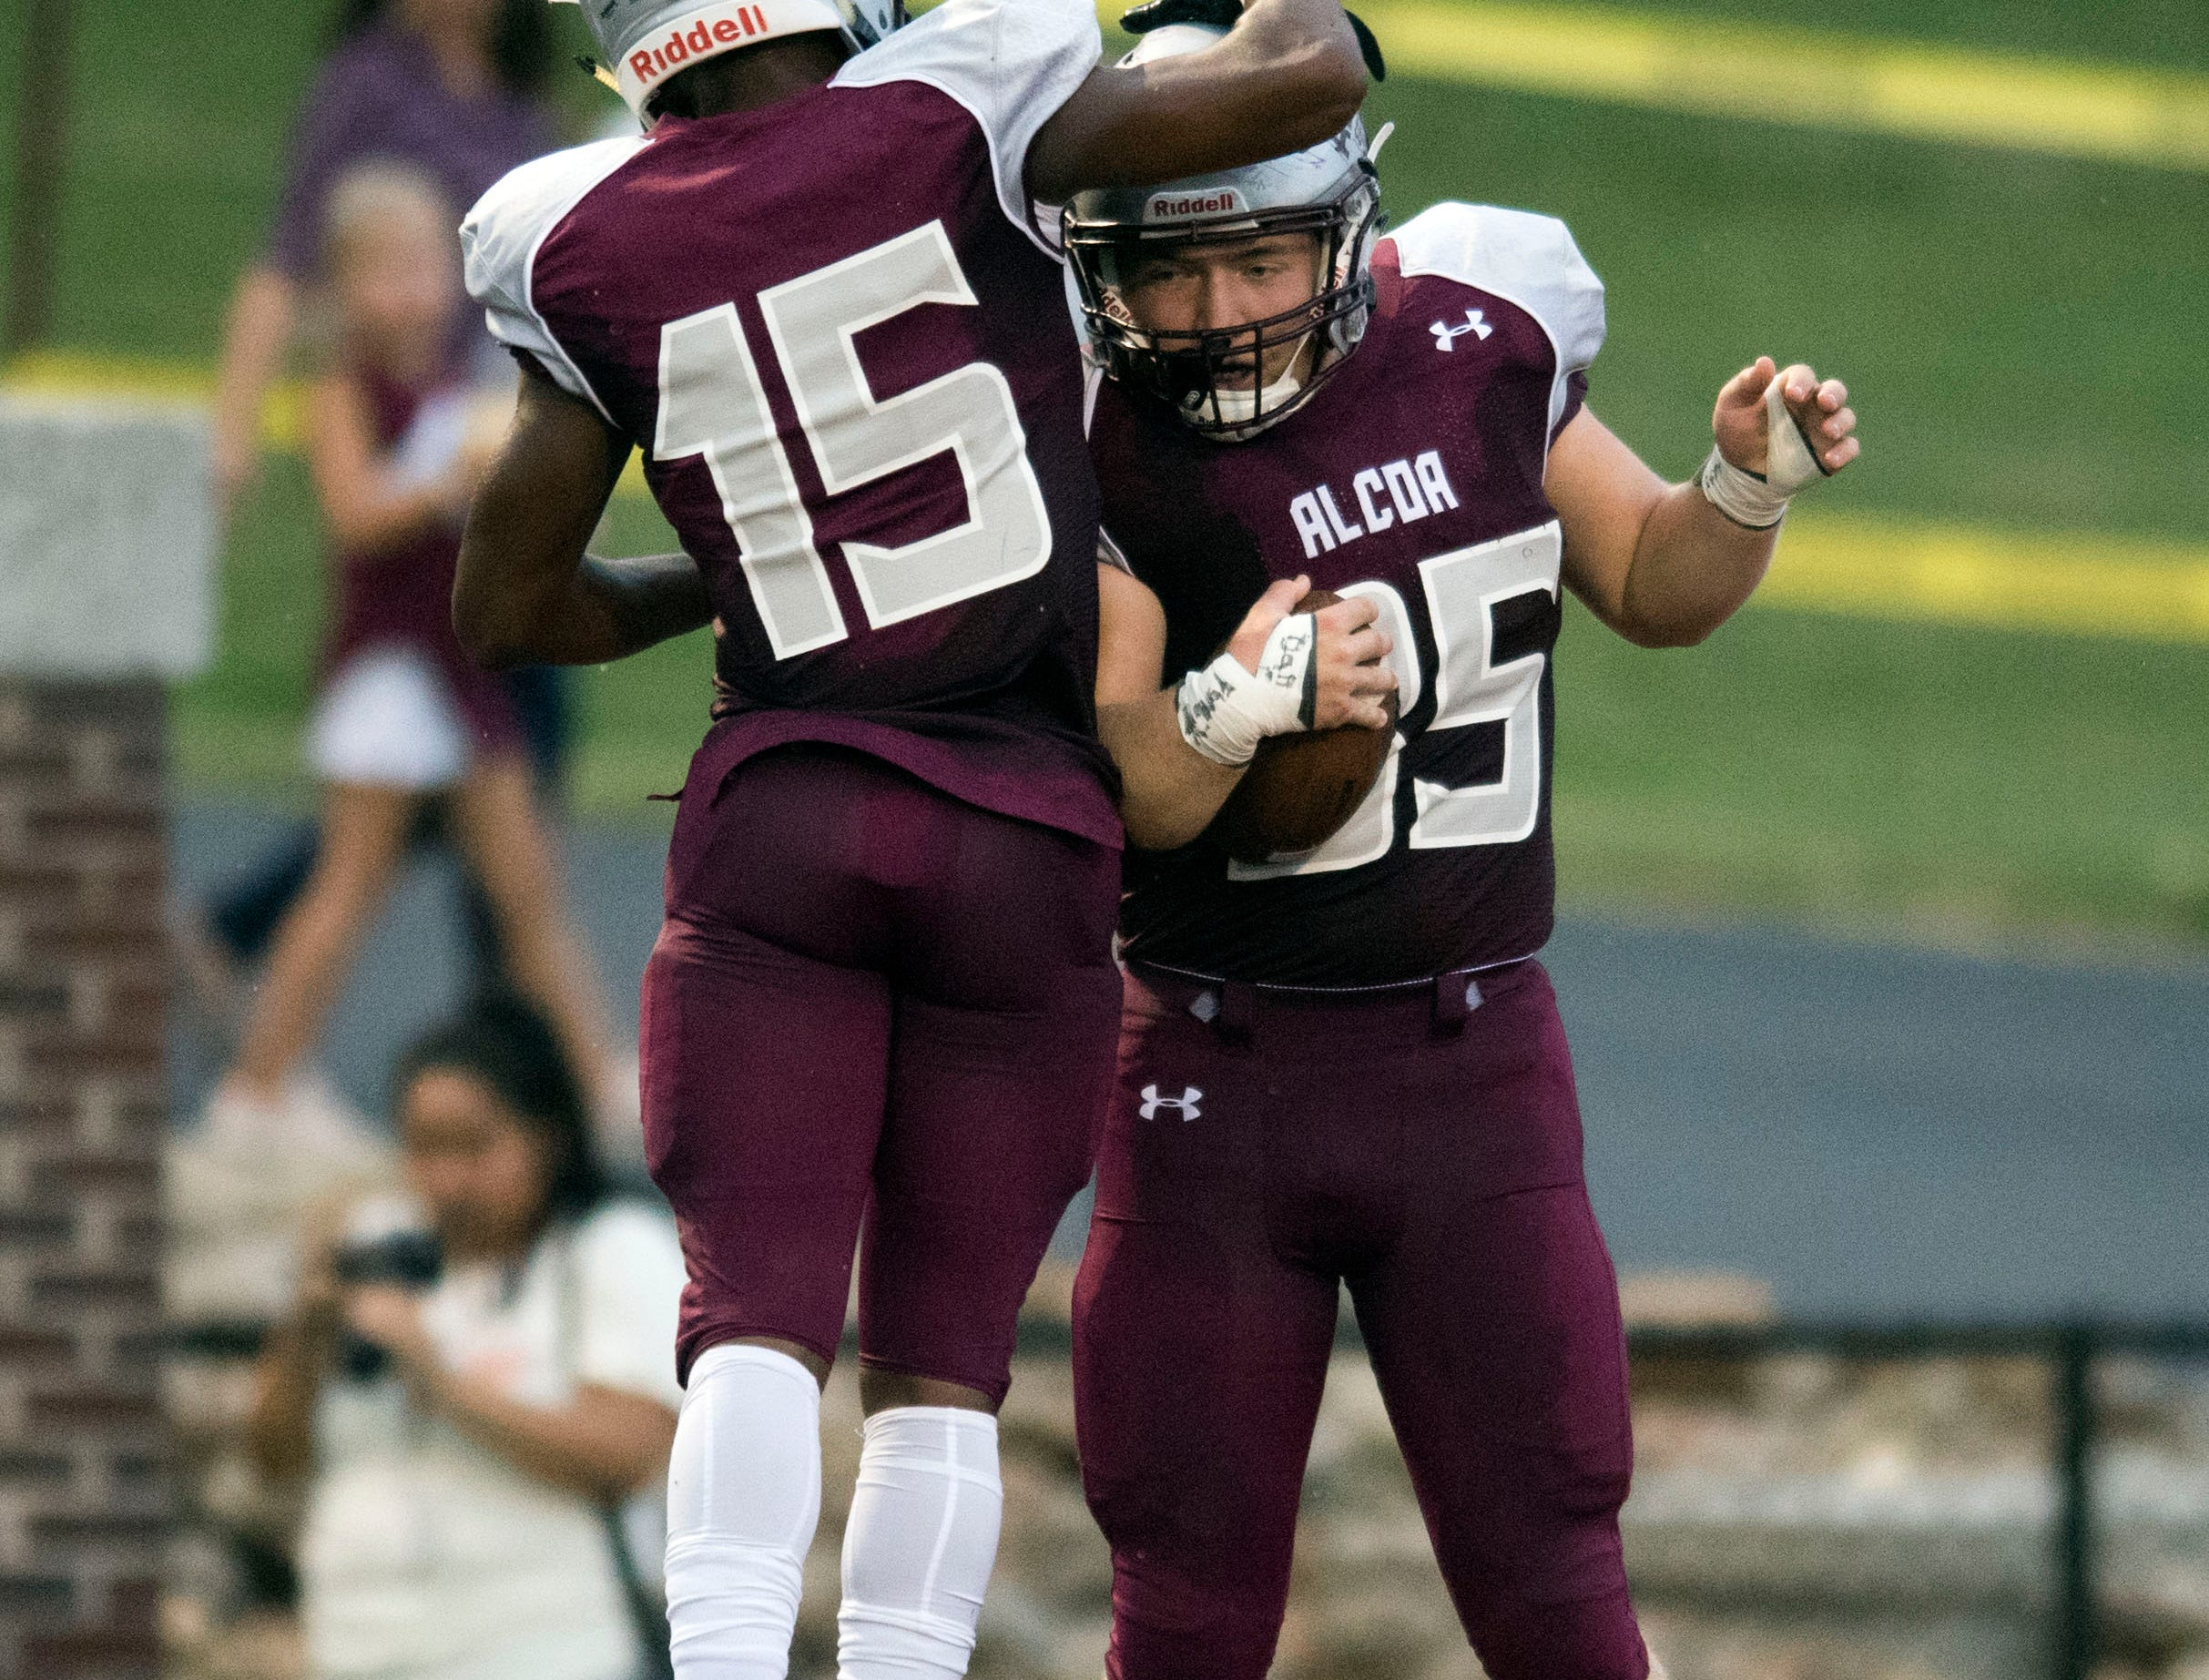 Alcoa's Ahmaudd Sankey (15) and Malachi Jared (35) celebrate after Jared intercepted a ball for a touchdown in the football game against Grace Christian Academy on Thursday, August 16, 2018.